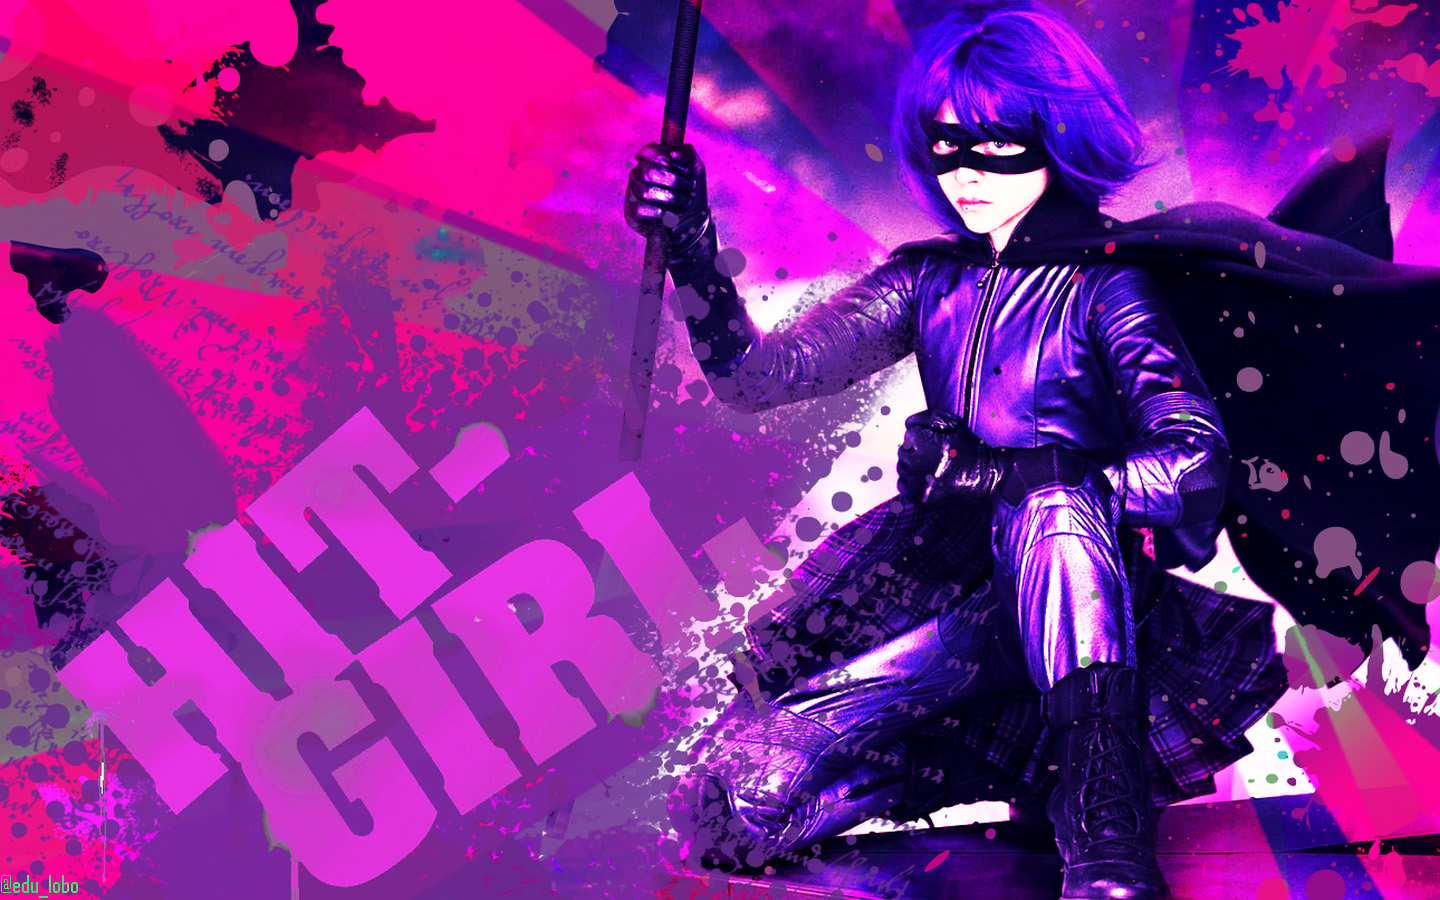 Love Wallpaper Kickass : Kick-Ass images Hit-Girl HD wallpaper and background ...